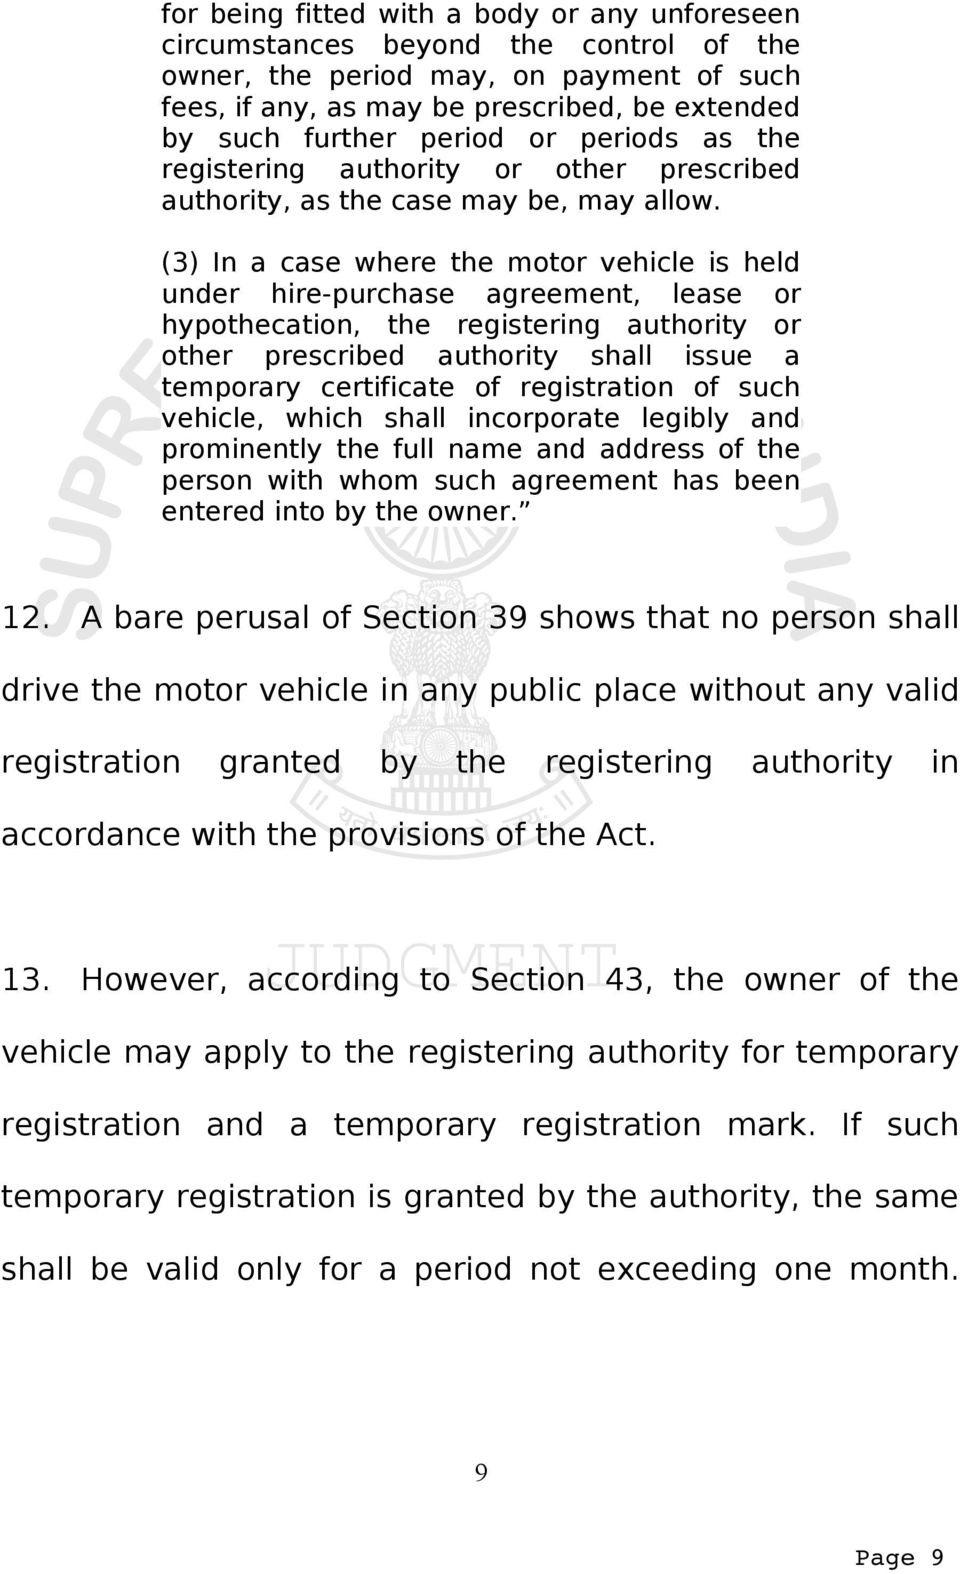 (3) In a case where the motor vehicle is held under hire-purchase agreement, lease or hypothecation, the registering authority or other prescribed authority shall issue a temporary certificate of